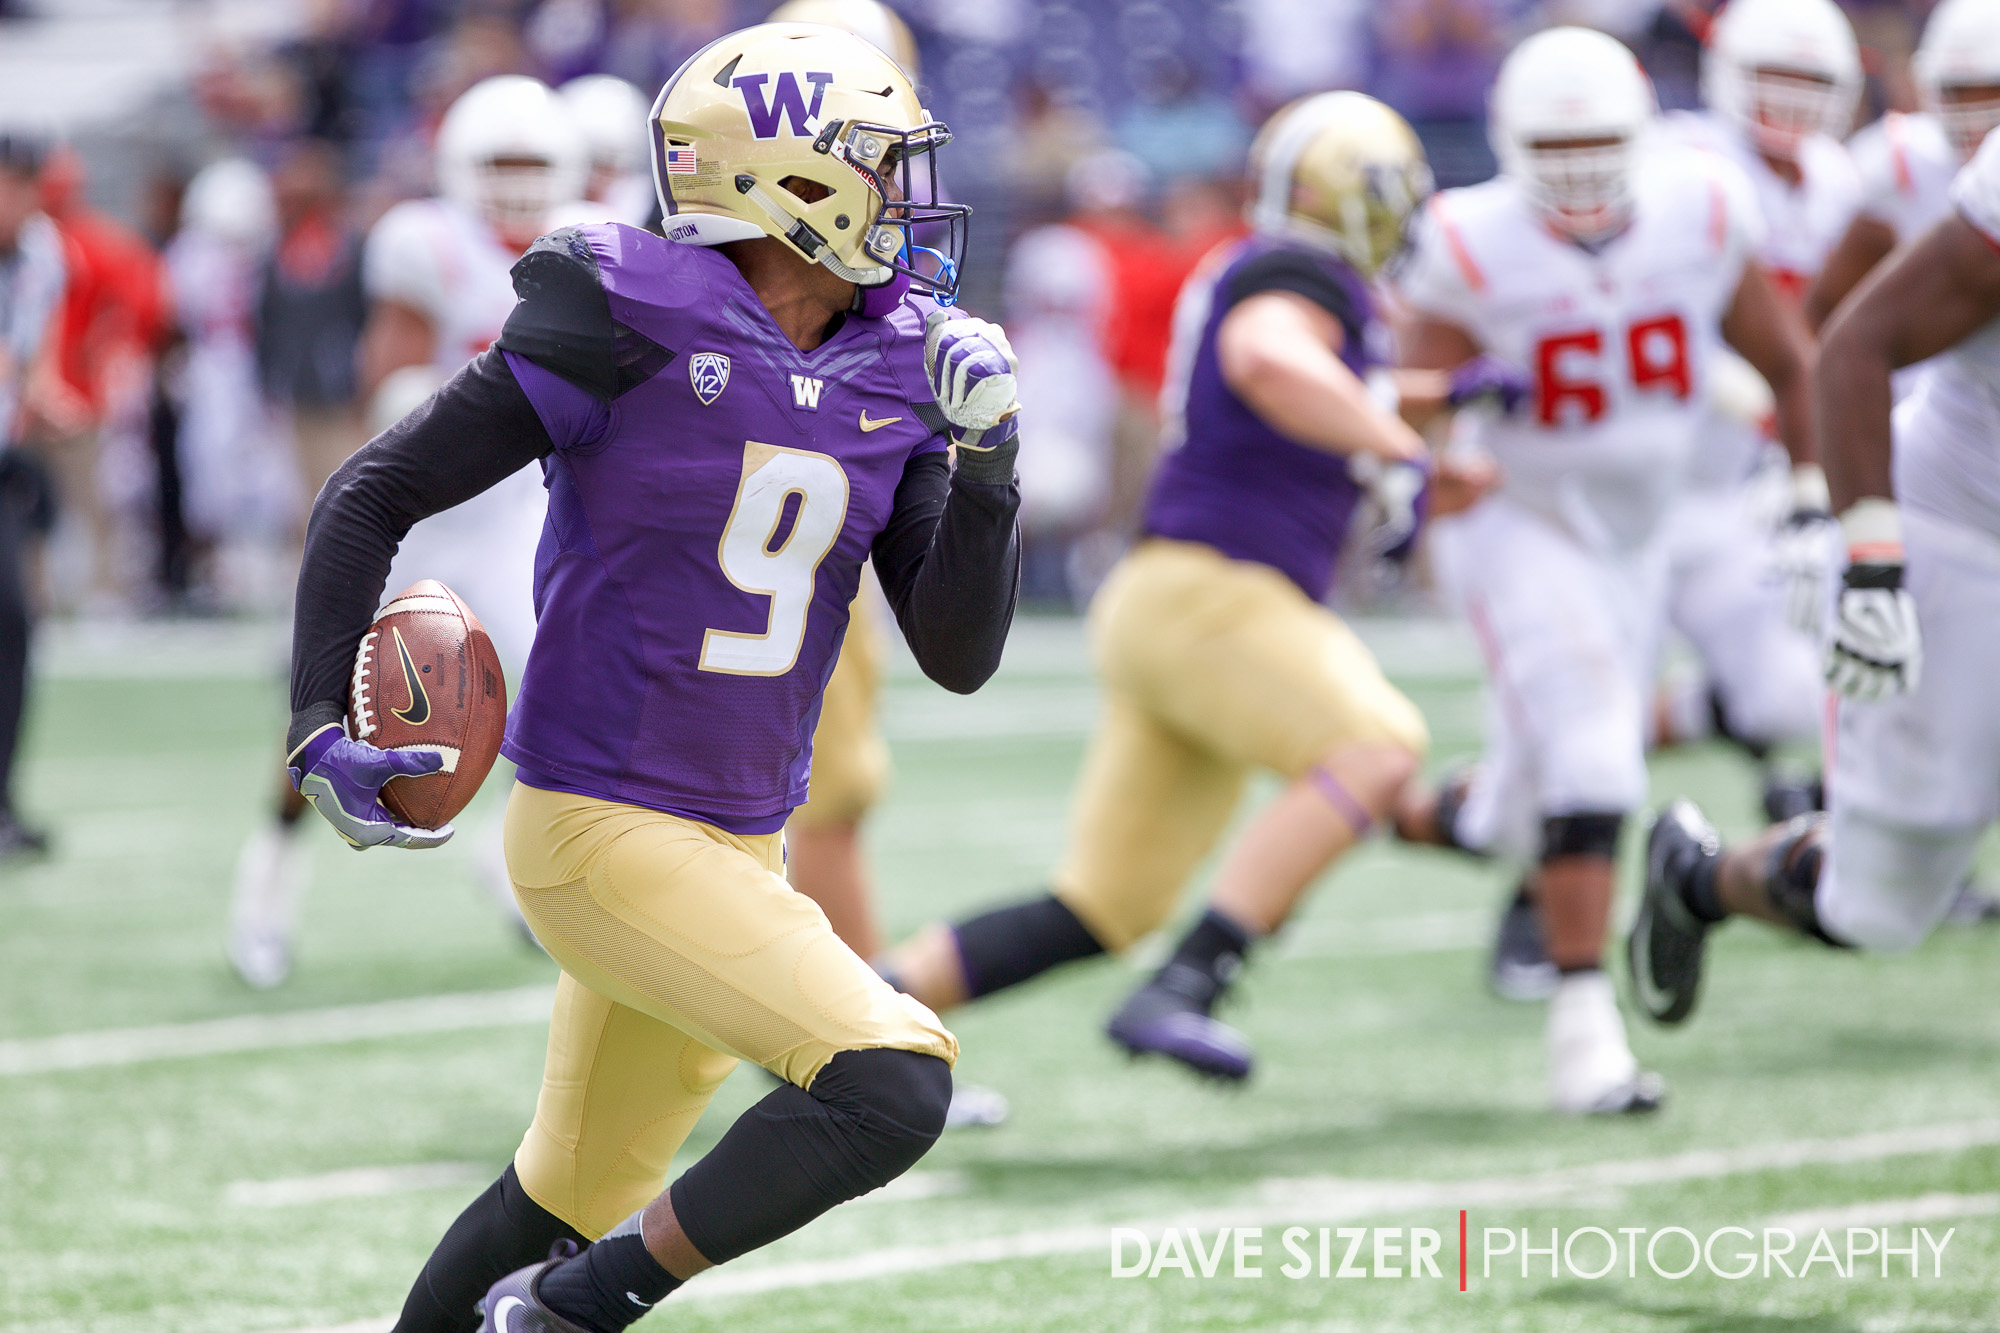 UW Safety Brandon Beaver runs back an interception almost to the end zone, but is stopped just short.